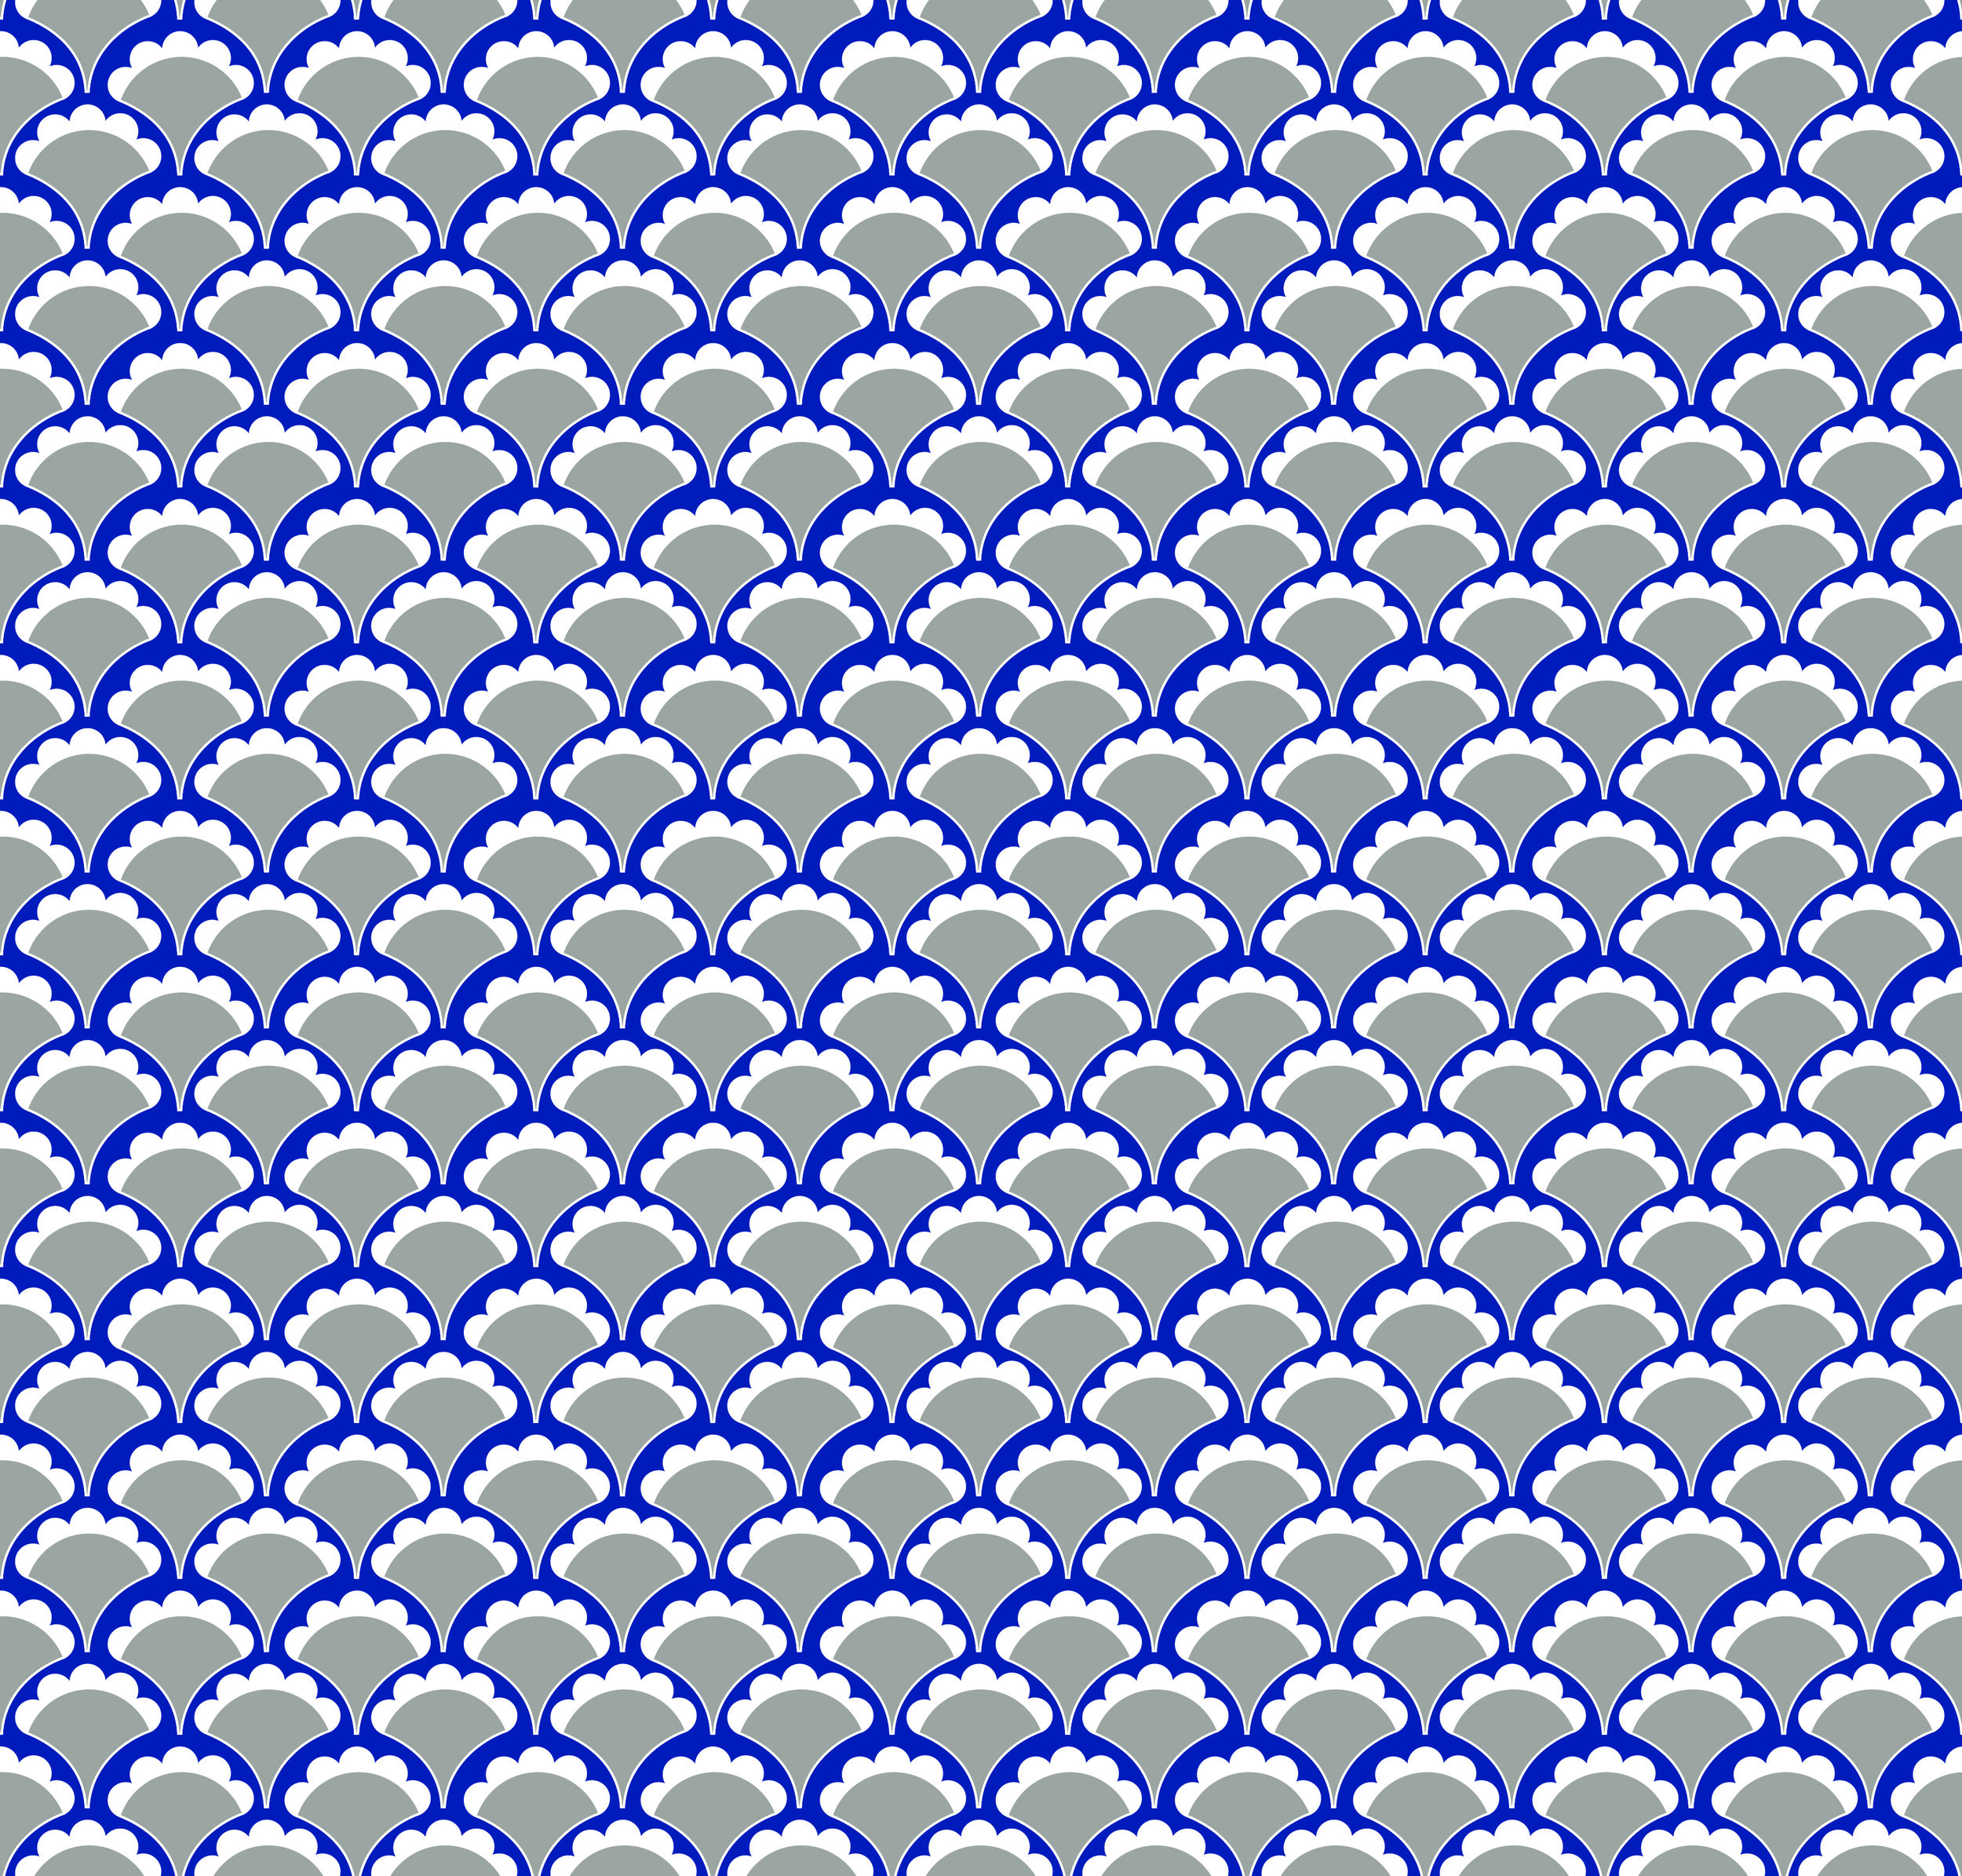 scallop scales blue and grey-01.jpg